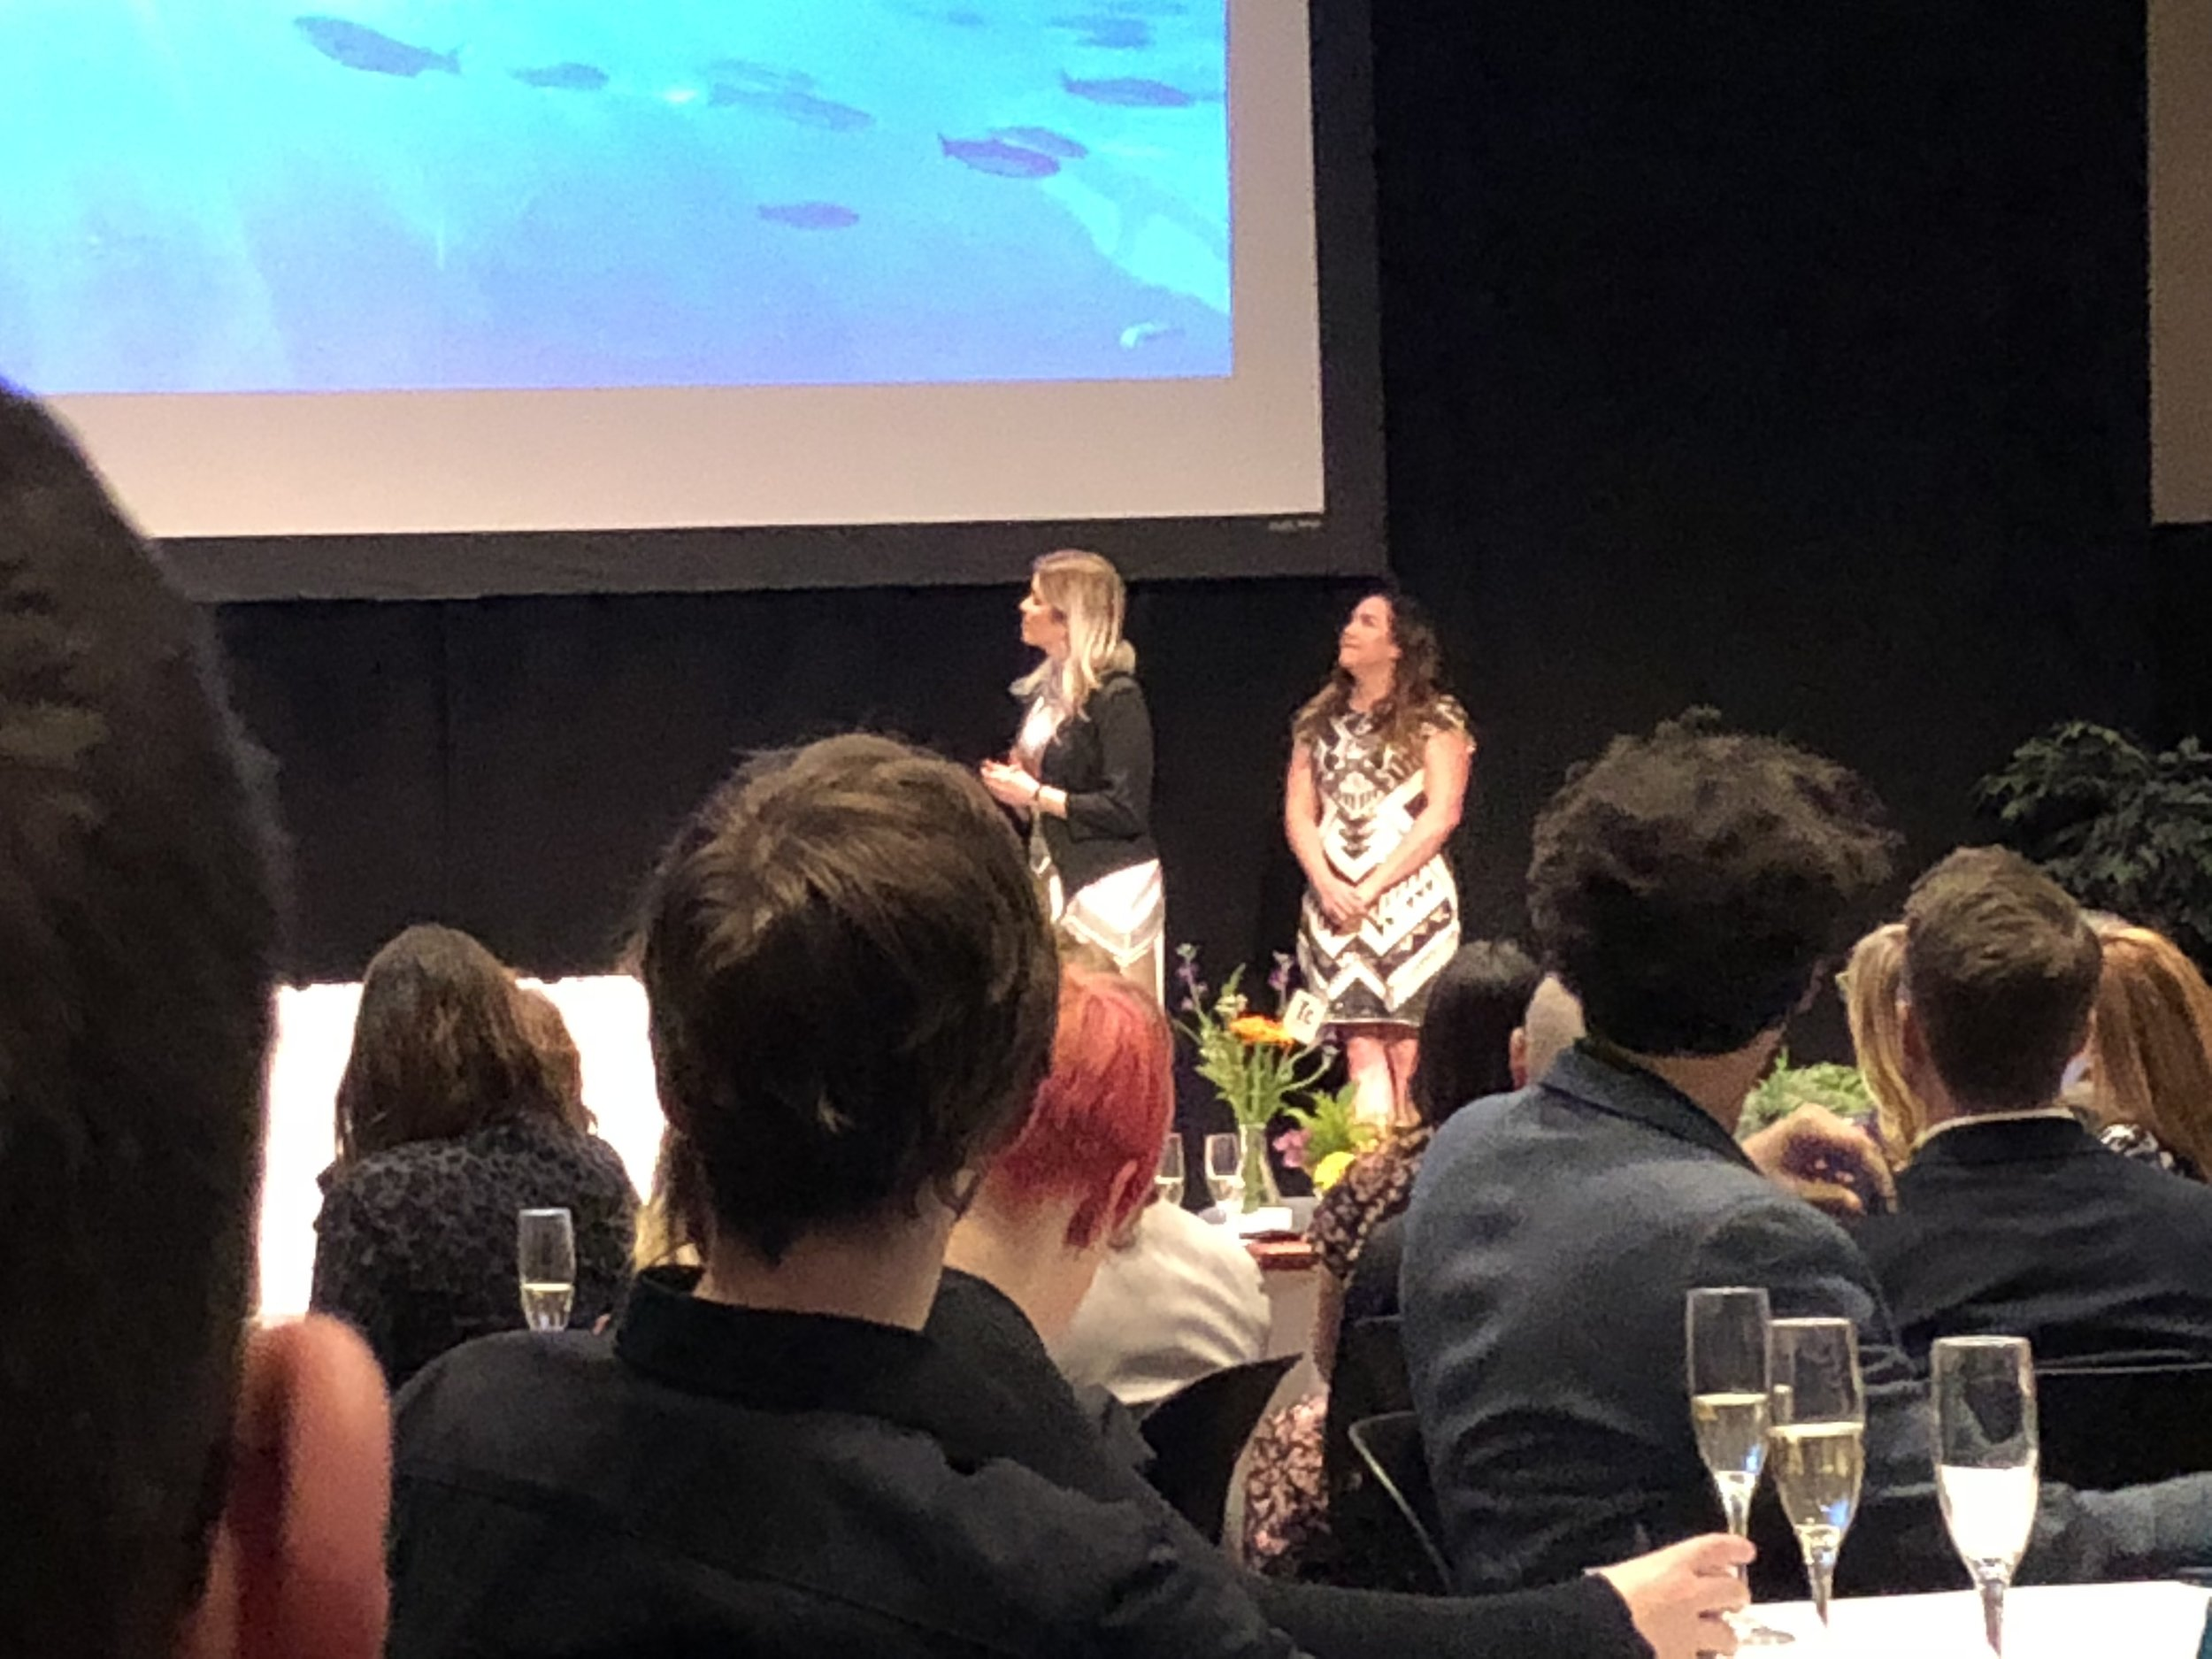 Hotbed's Executive Producer, Jackie Robles (right), presenting at the ADDY Awards.